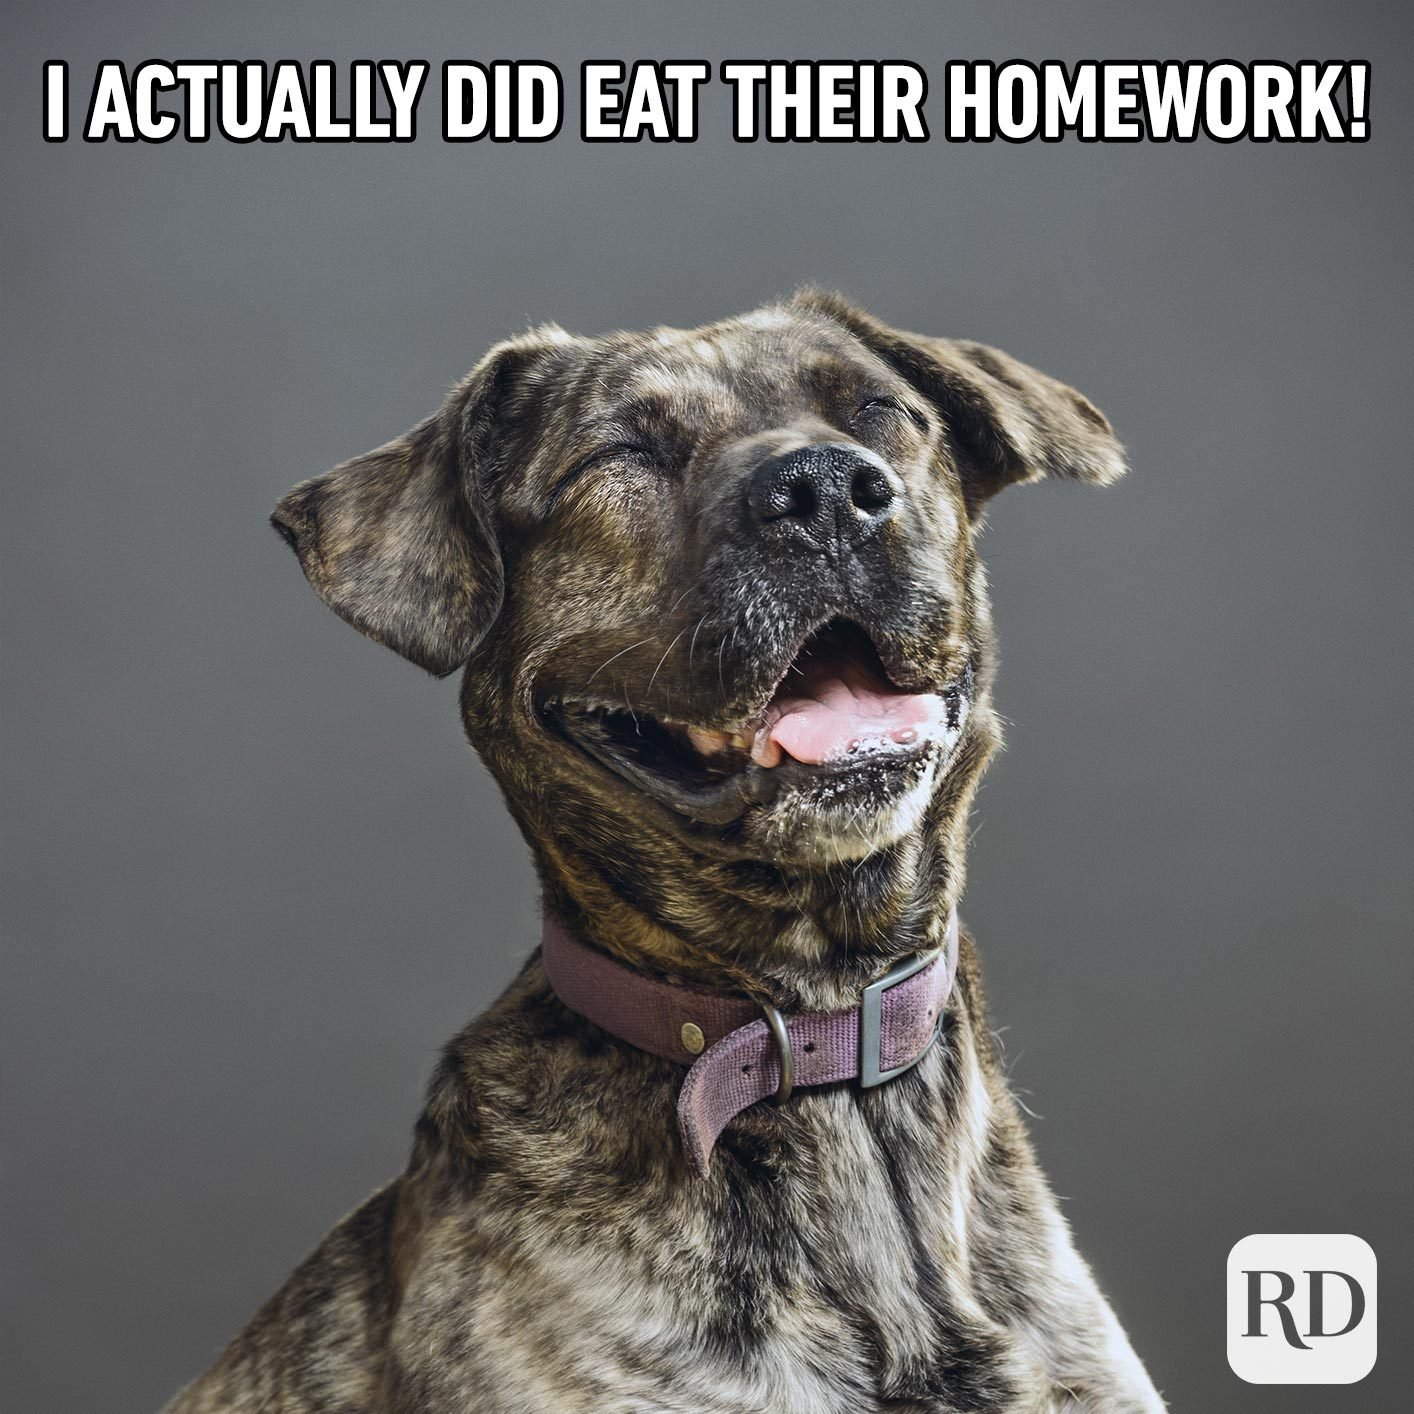 Dog laughing. Meme text: I actually did eat their homework!